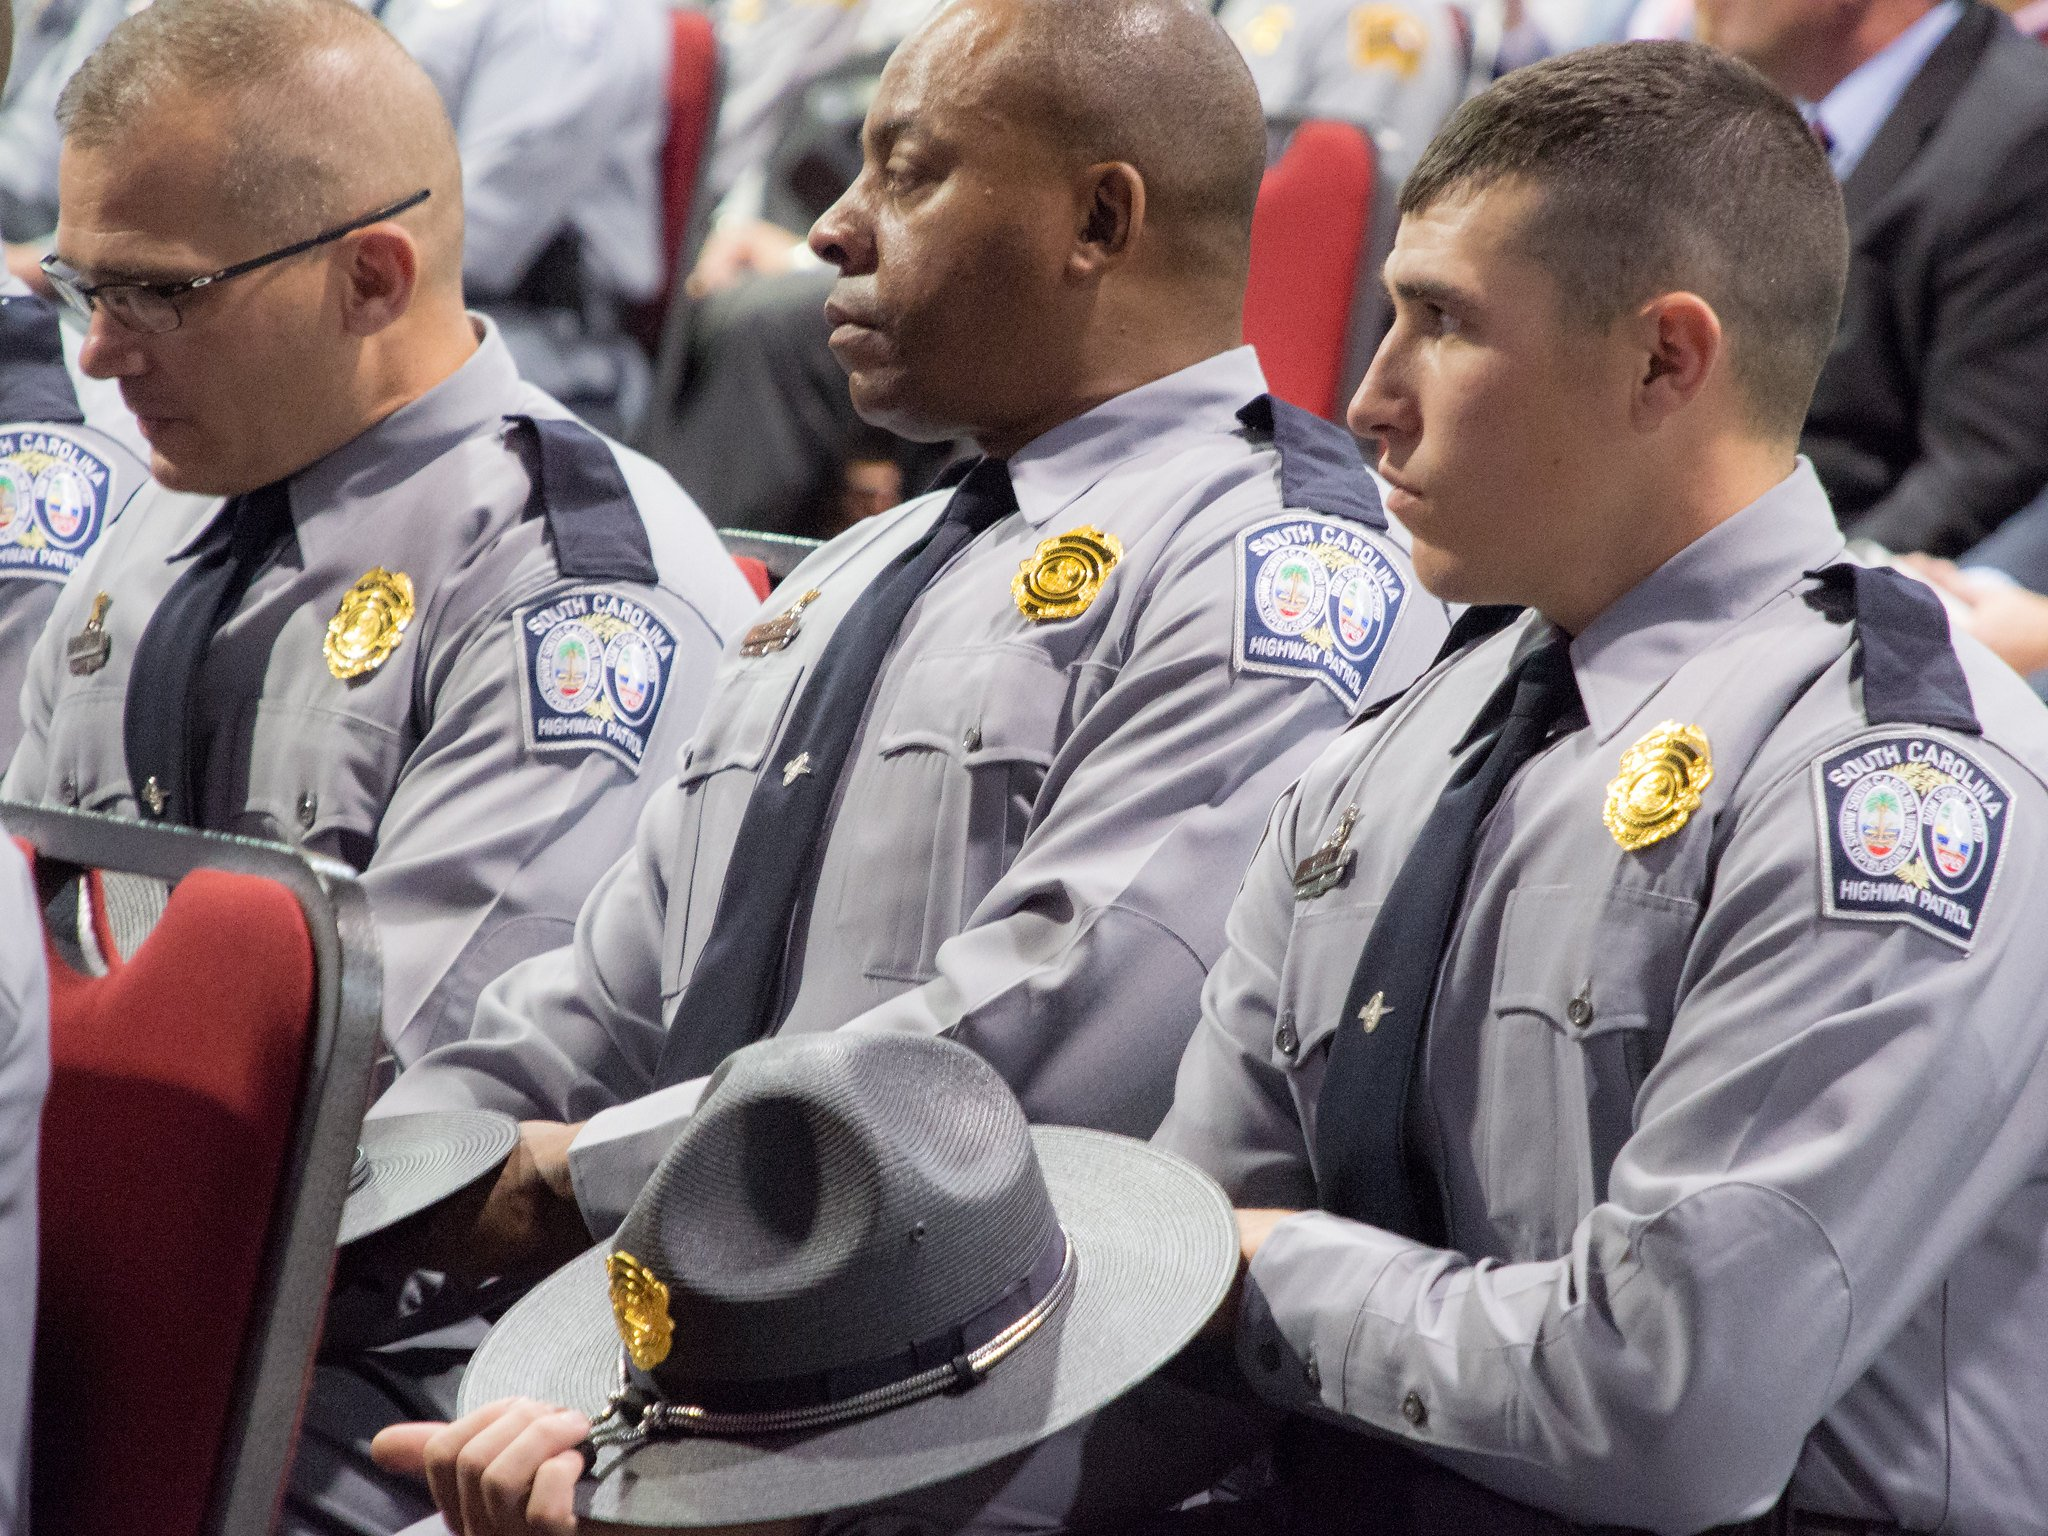 FITSNews – SC Trooper Shortages: By The Numbers